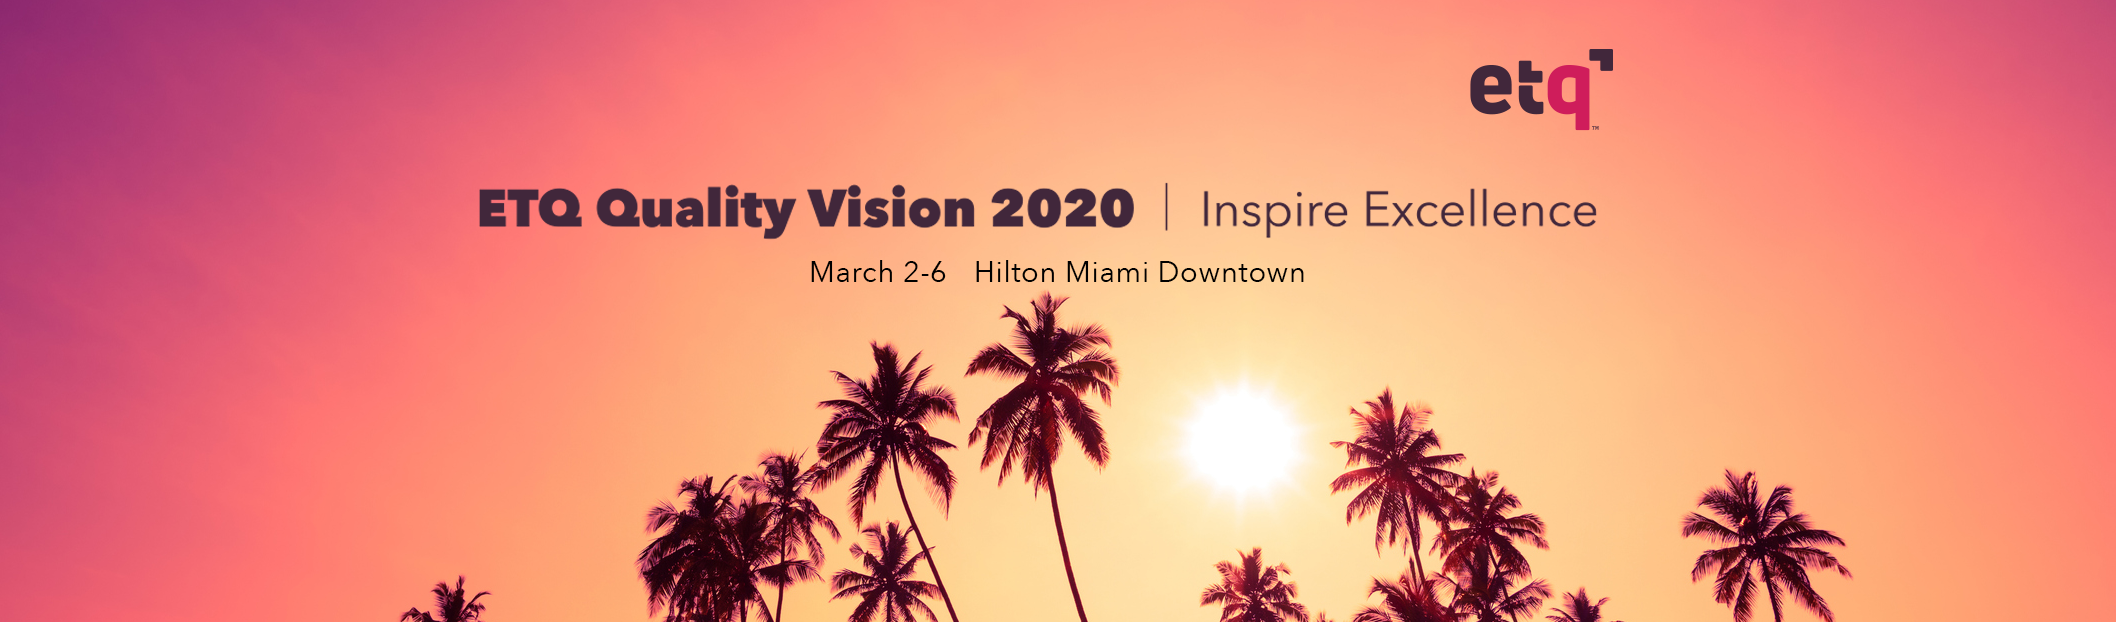 Meet Us in Miami for ETQ Quality Vision 2020